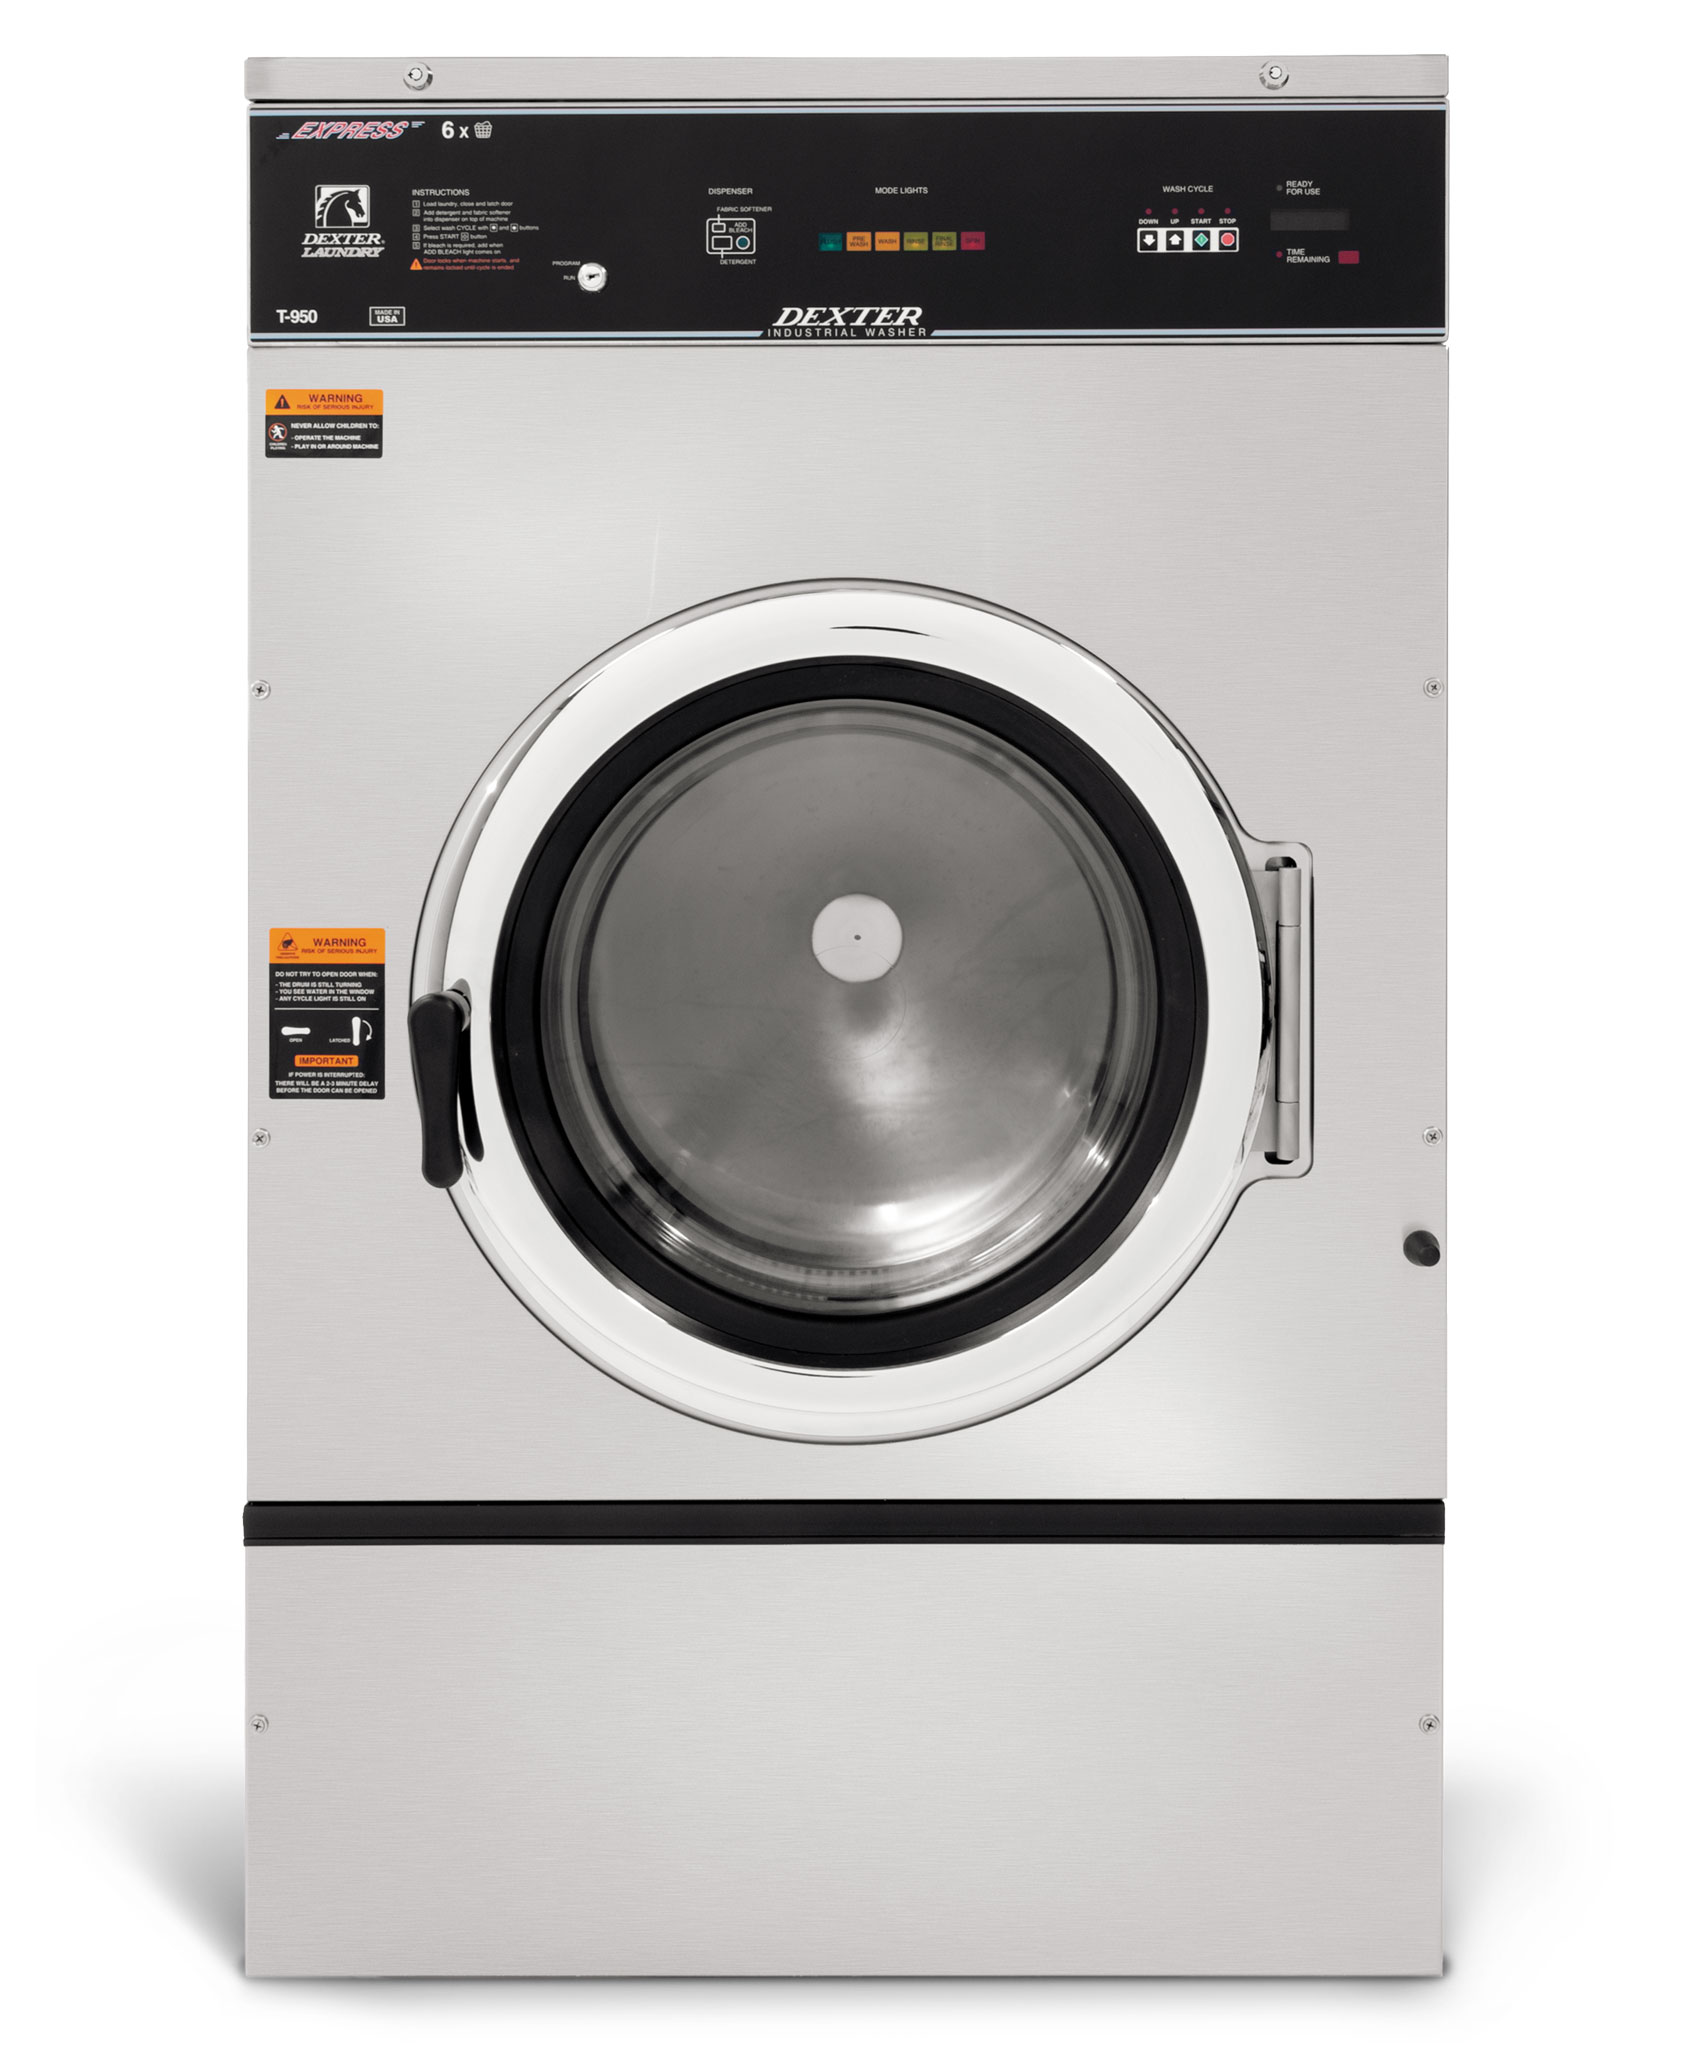 t-950-express-6-cycle-black-front